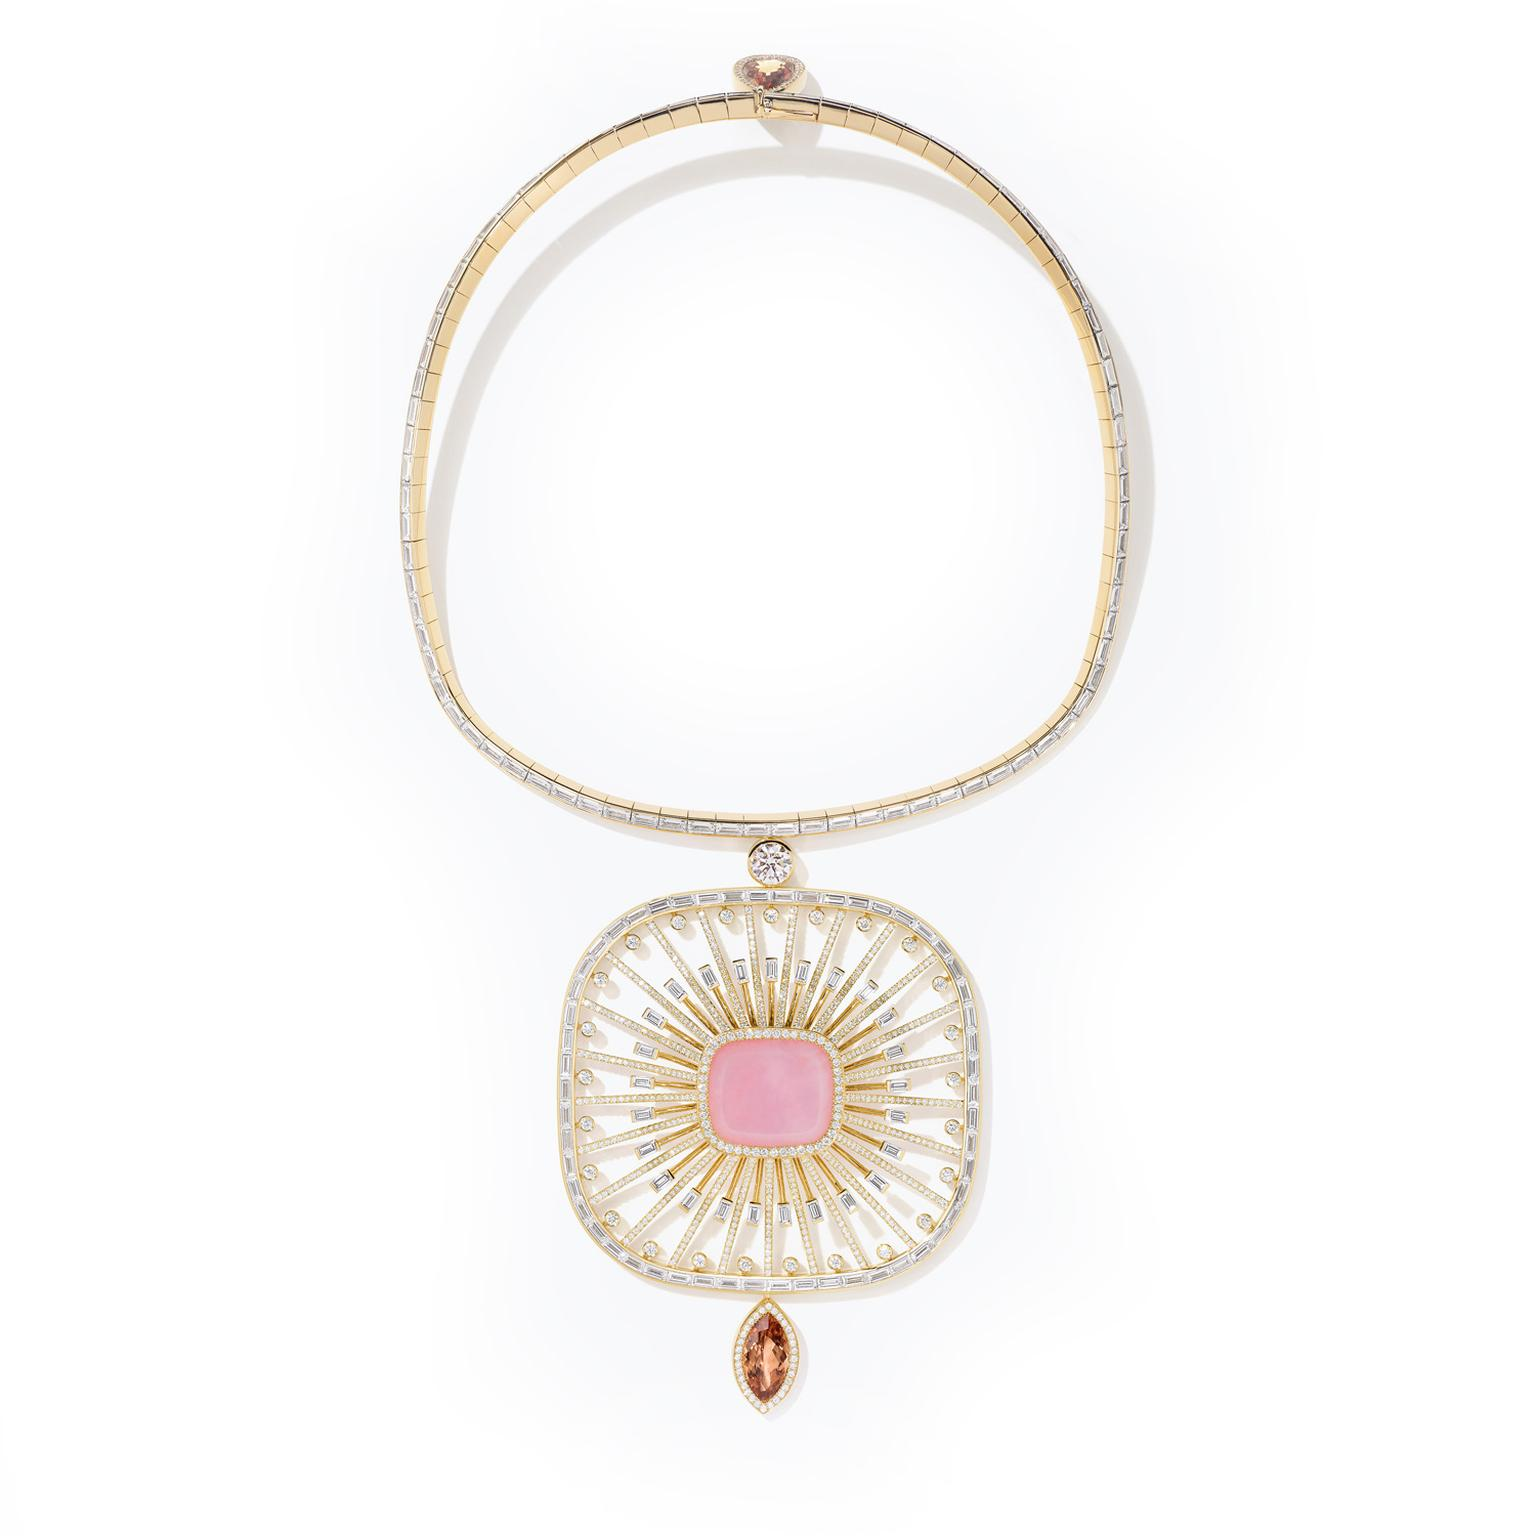 Hermès' Attelage Céleste pink opal pendant from the HB-IV Continuum collection